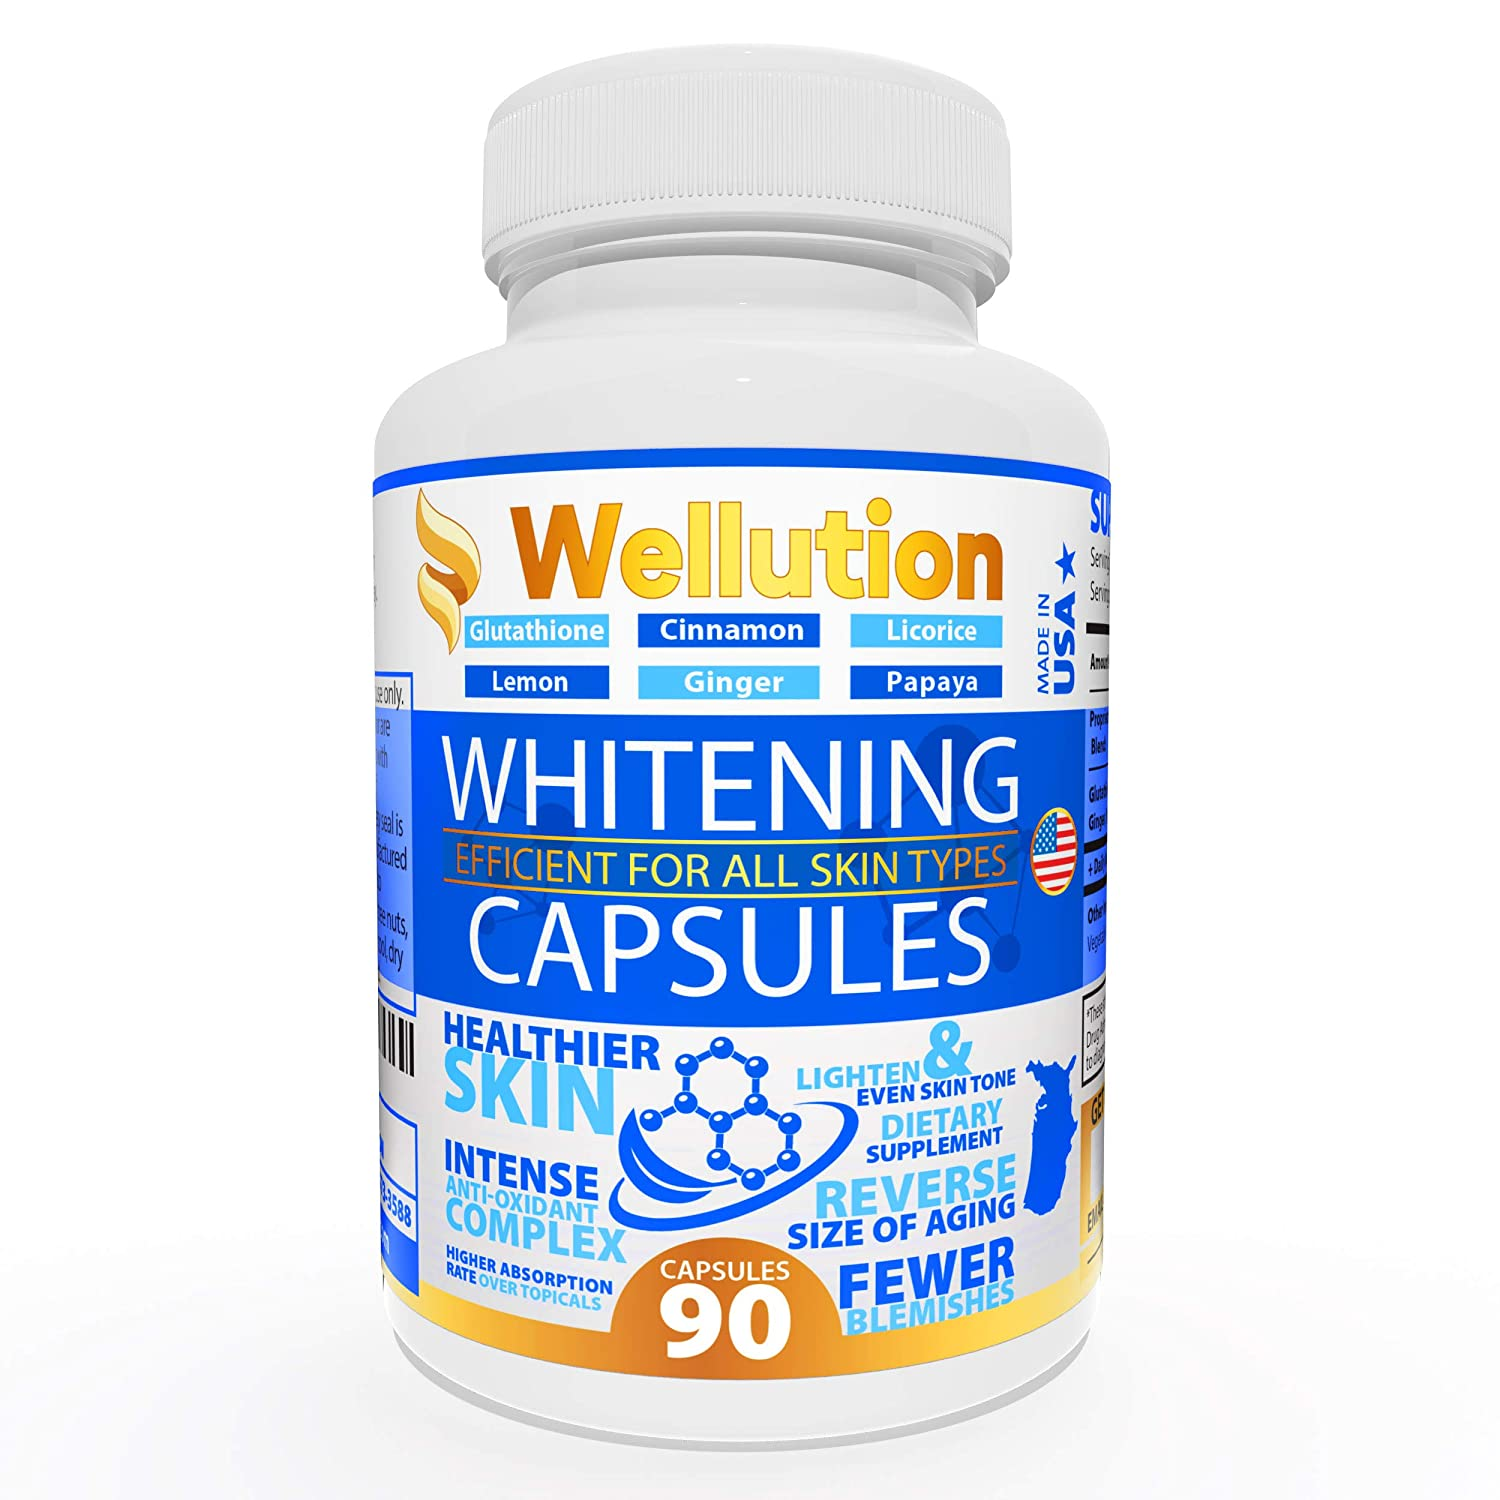 Whitening Pills for Skin - 90 caps - Herbal Supplement -3 Times Better Than glutathione - Focus on Clear Glossy Brightening and Smoothy Skin Support - Dark Spot Remover Acne & Acne Scar Remover